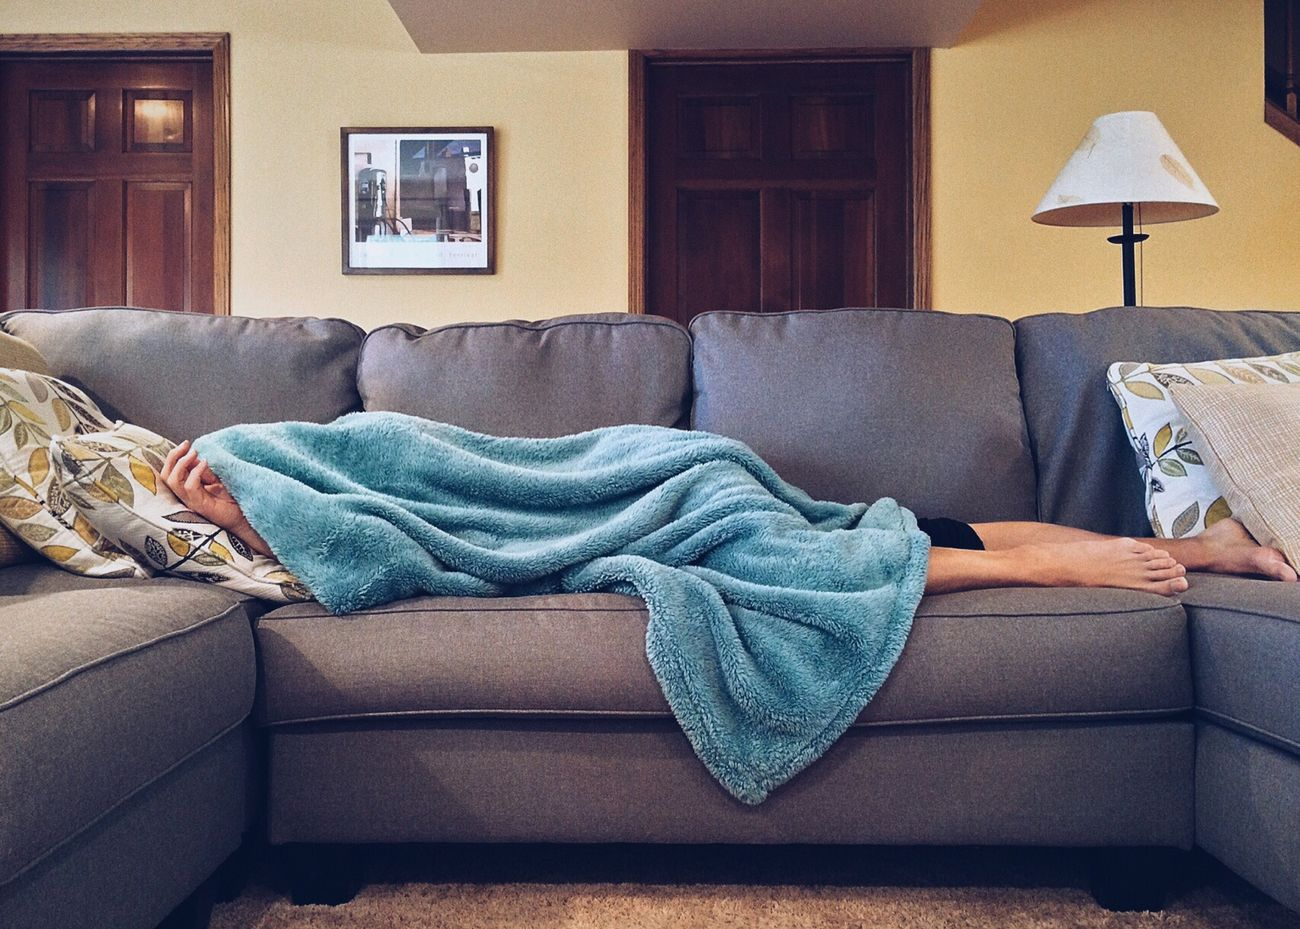 Person lying on couch with adrenal fatigue